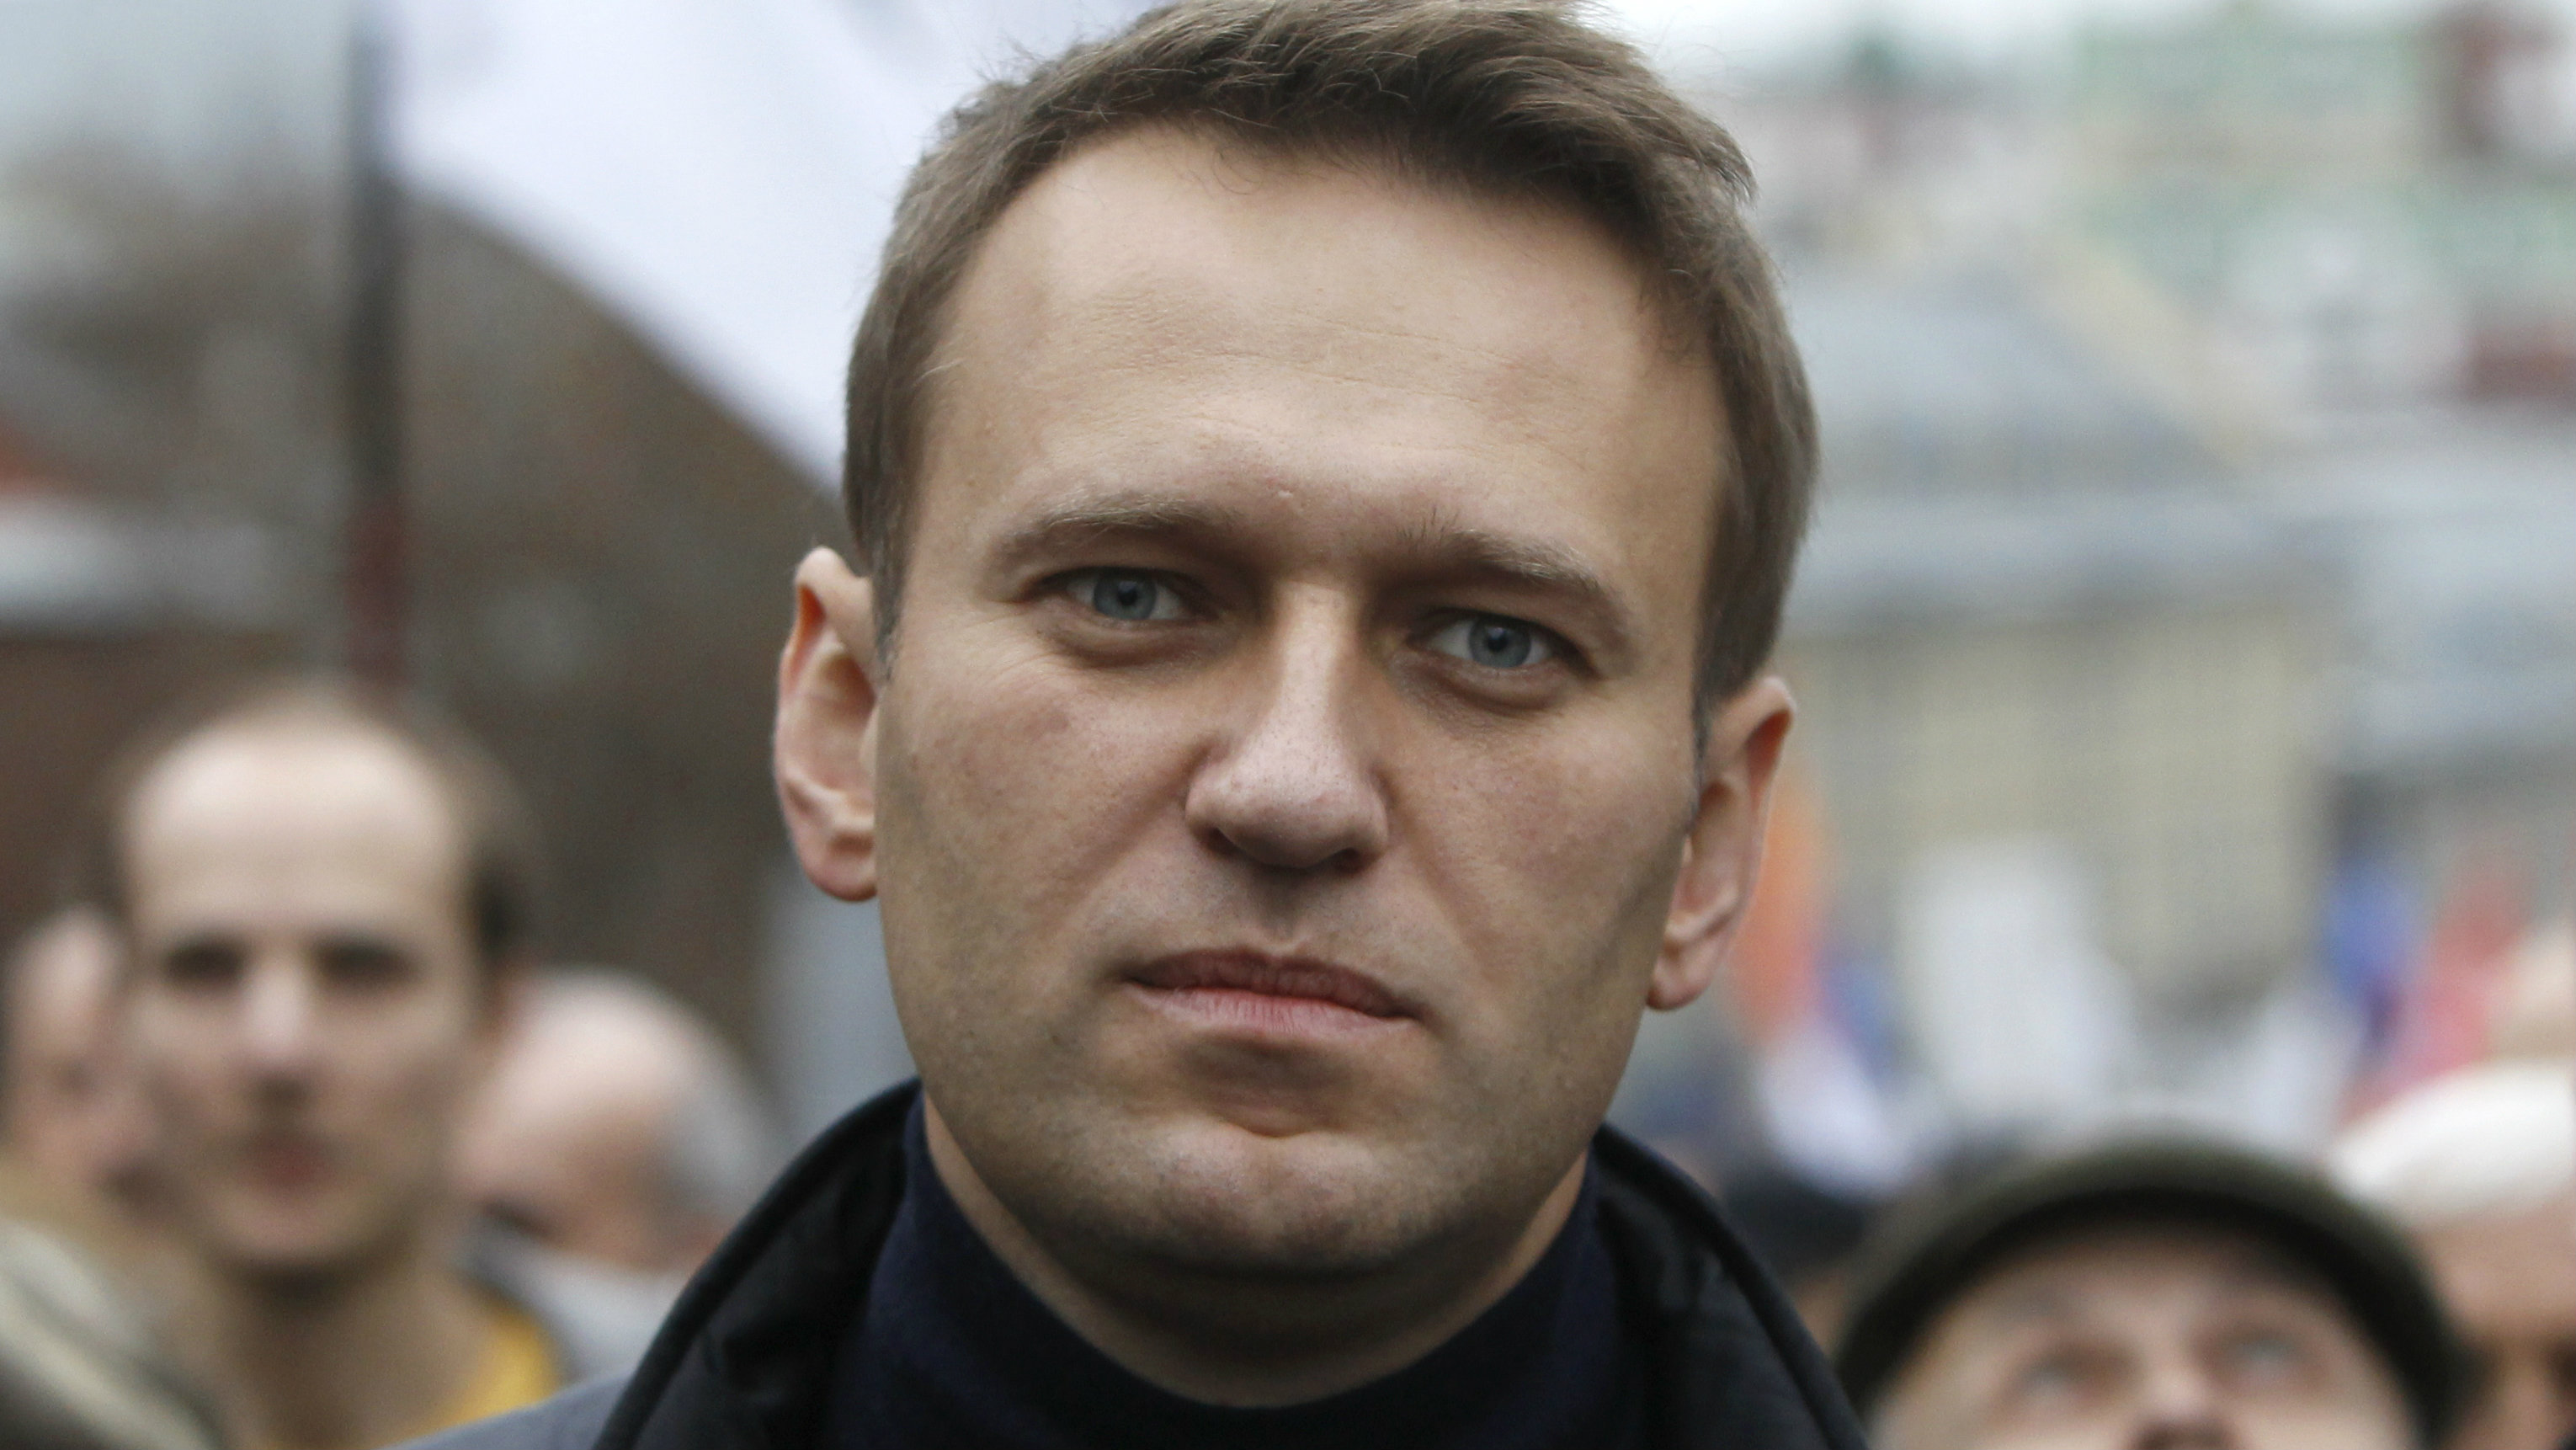 Russian opposition leader Alexei Navalny walks during an opposition rally in Moscow, October 27, 2013. Protesters demanded the release of political prisoners including anti-government activists detained in Moscow's Bolotnaya Square on May 6, 2012, the eve of President Vladimir Putin's inauguration. REUTERS/Maxim Shemetov (RUSSIA - Tags: CIVIL UNREST POLITICS CRIME LAW)